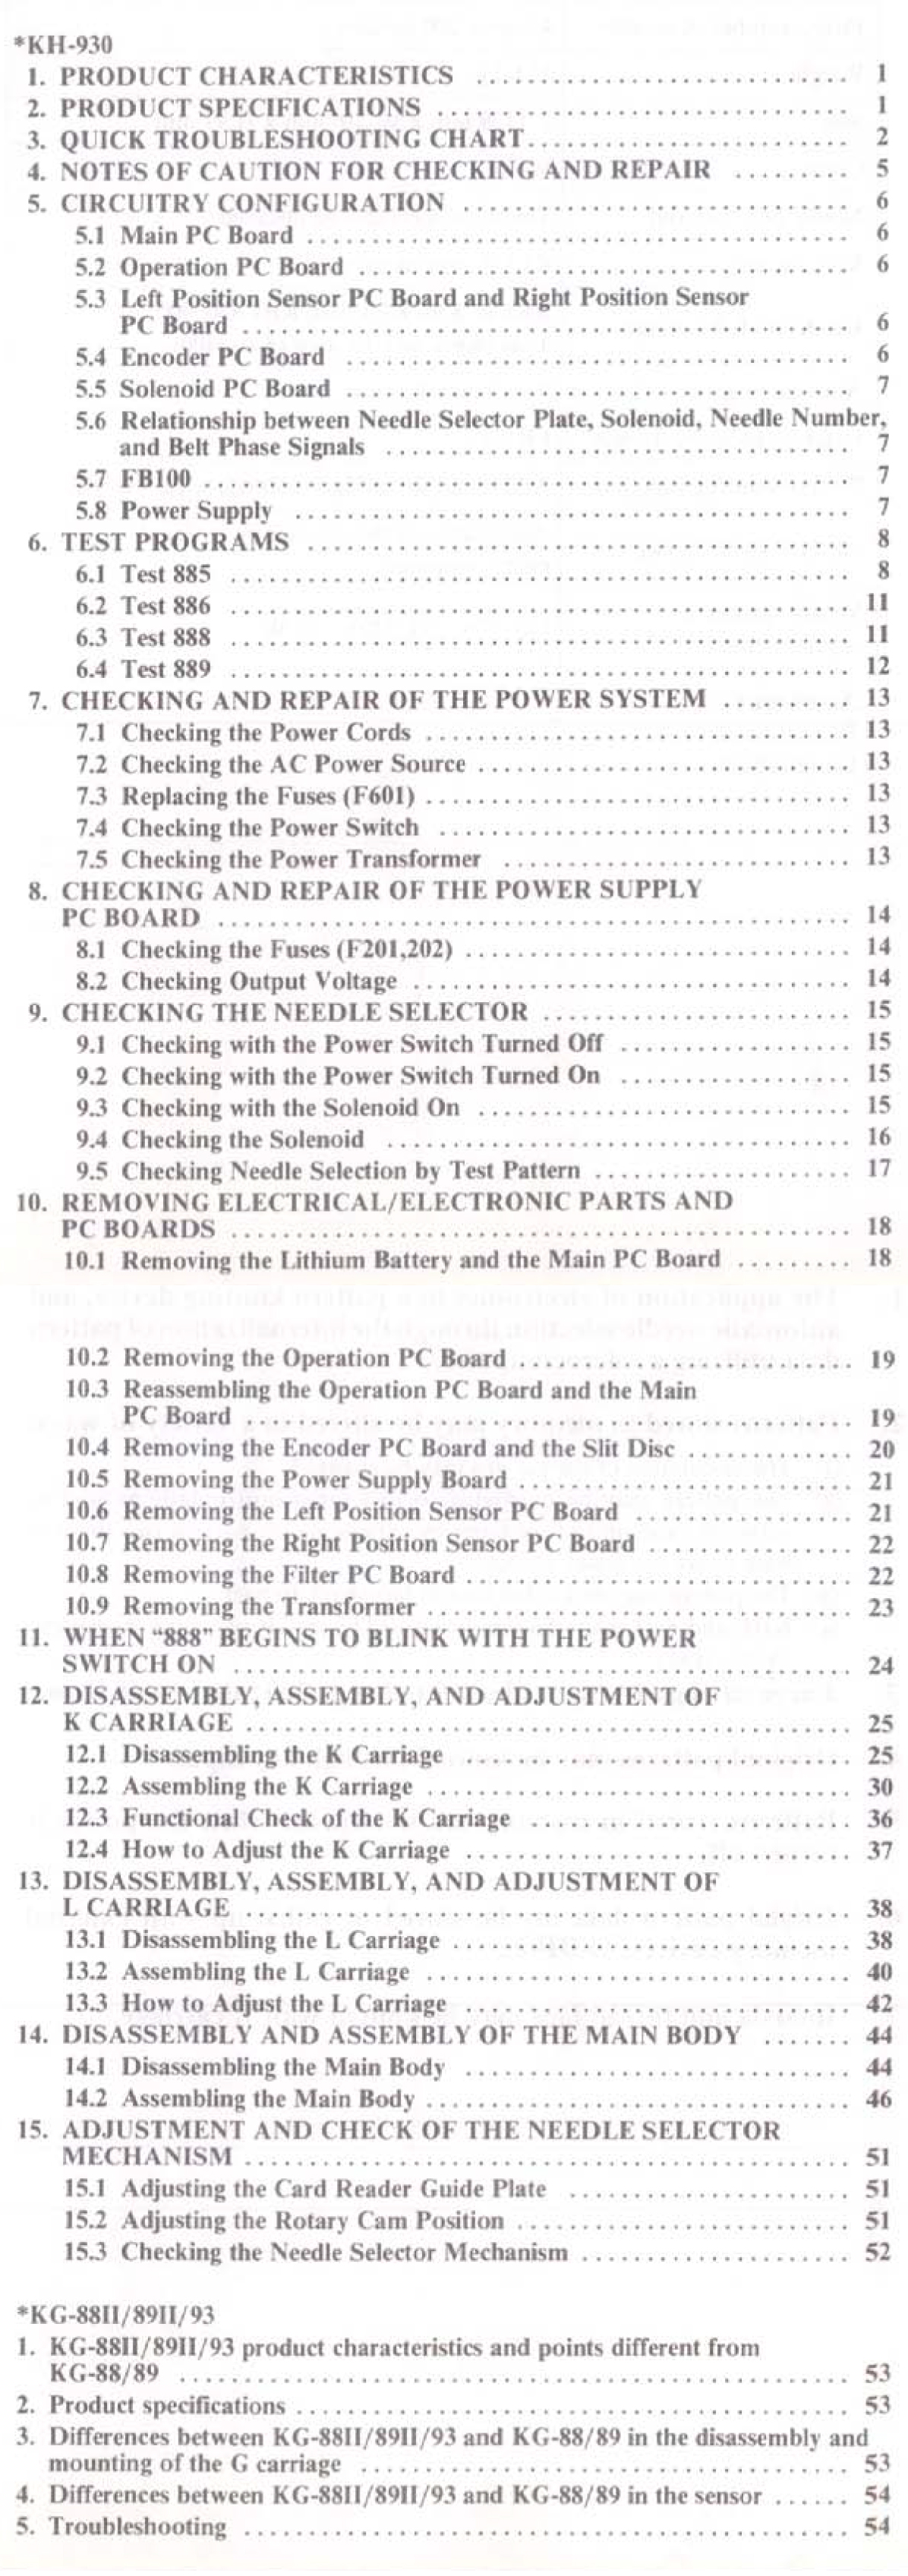 brother-kh930-service-manual-contents.jpg